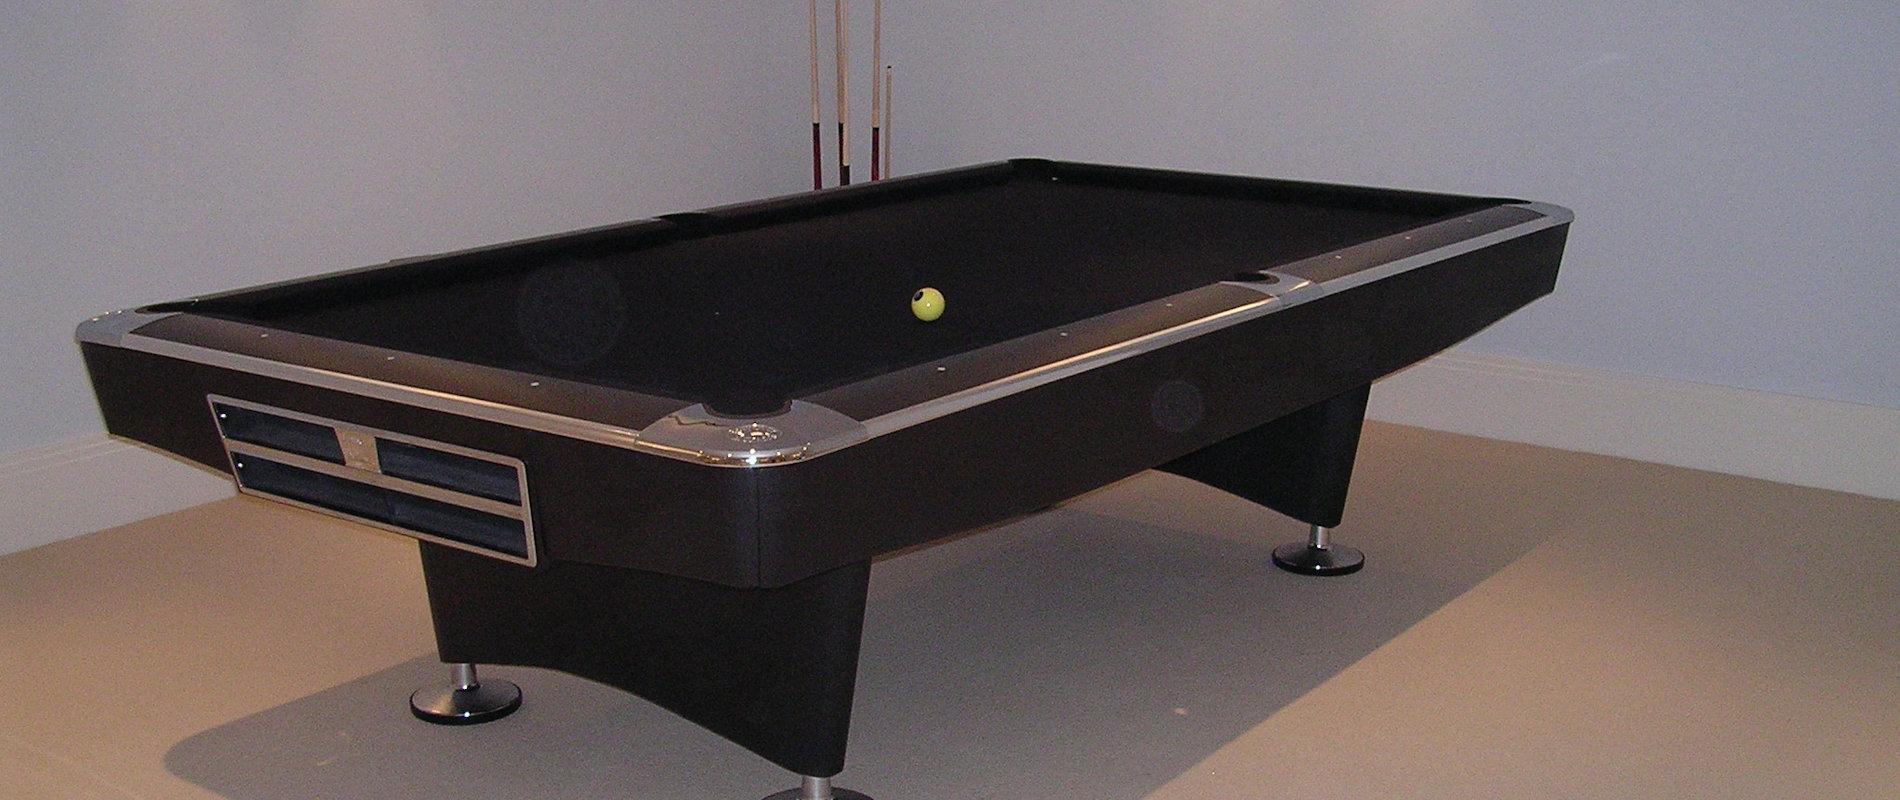 American Pool Table - Previous Owner Eric Clapton